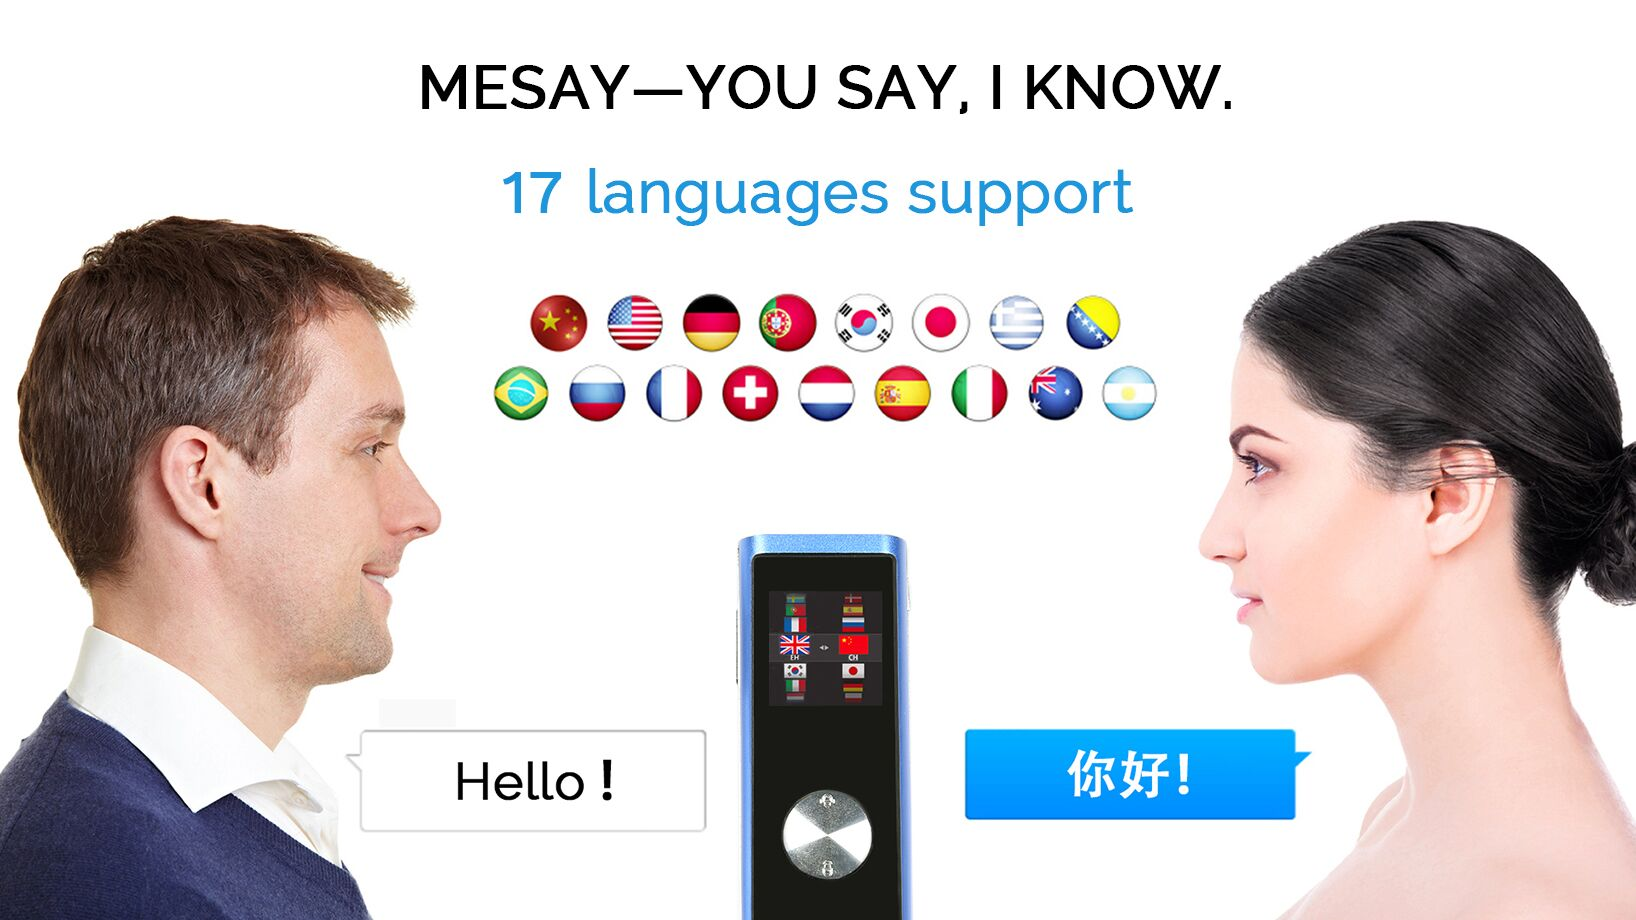 Mesay, The Translation Device That Helps People Scale Globally Launches On Kickstarter